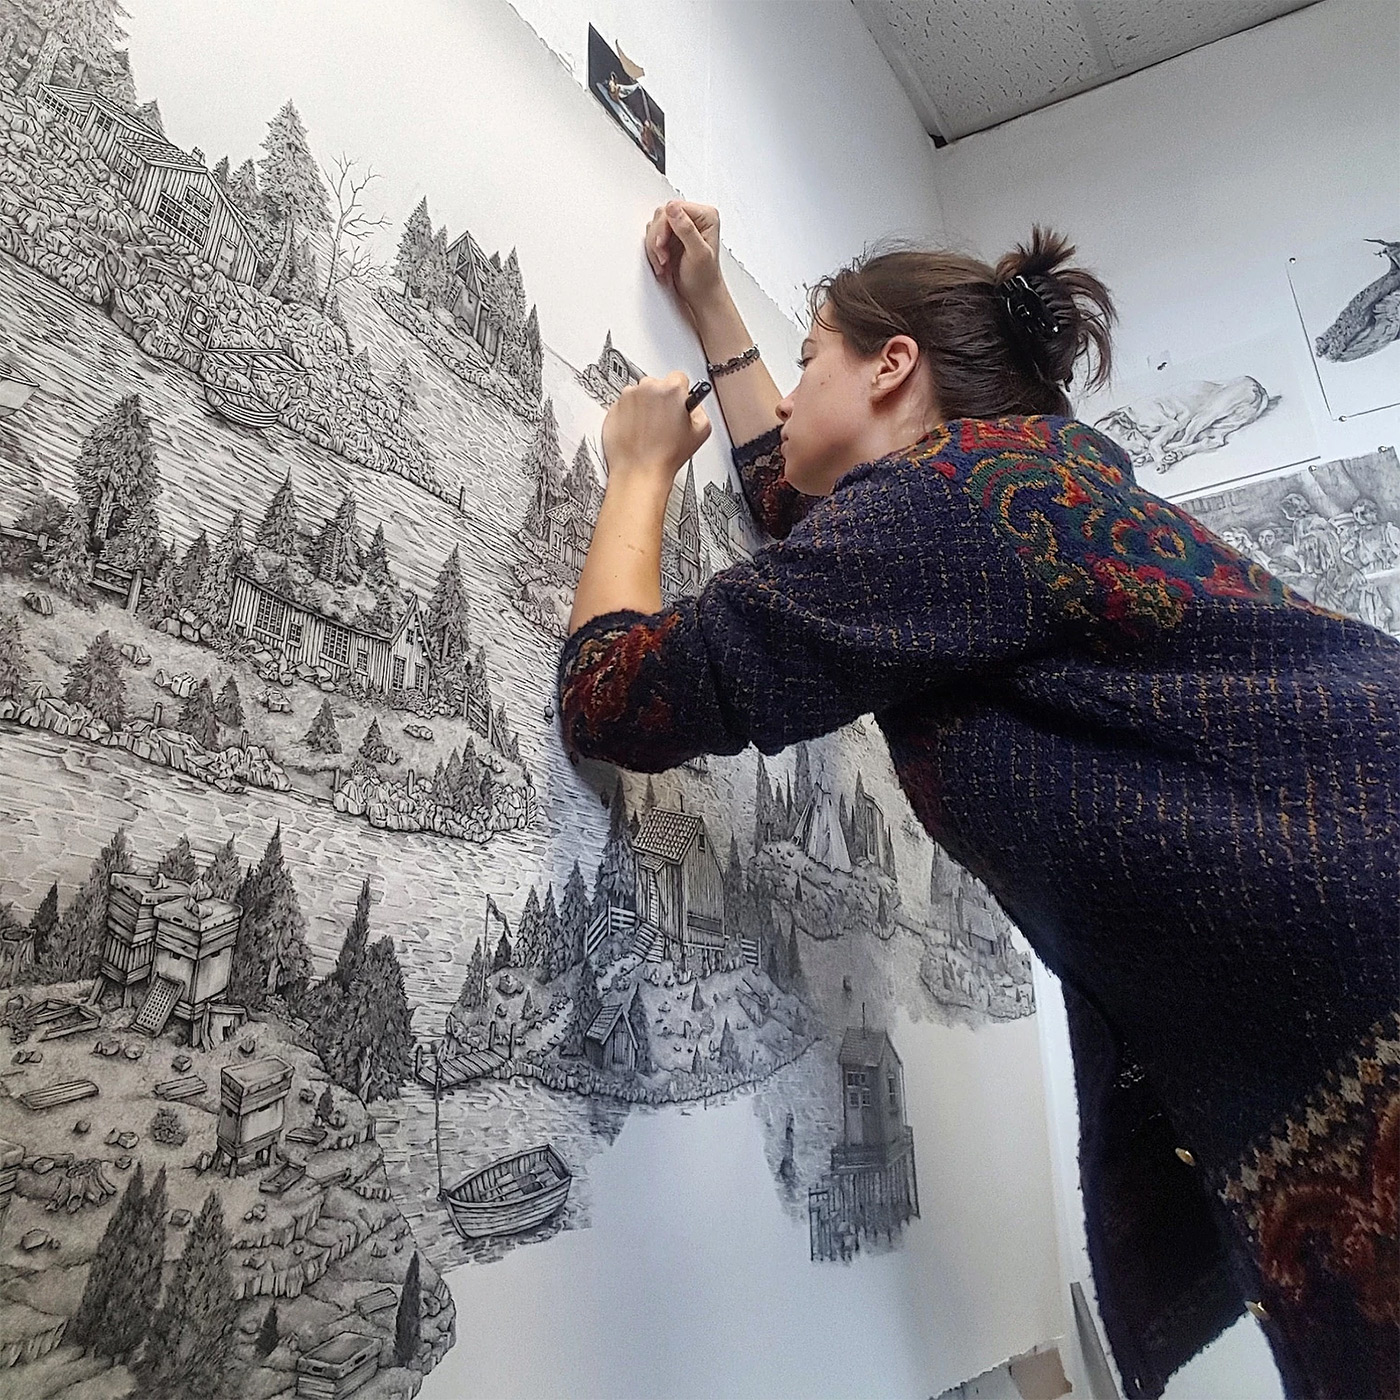 Monumentally Detailed Pen Drawings That Combine Real And